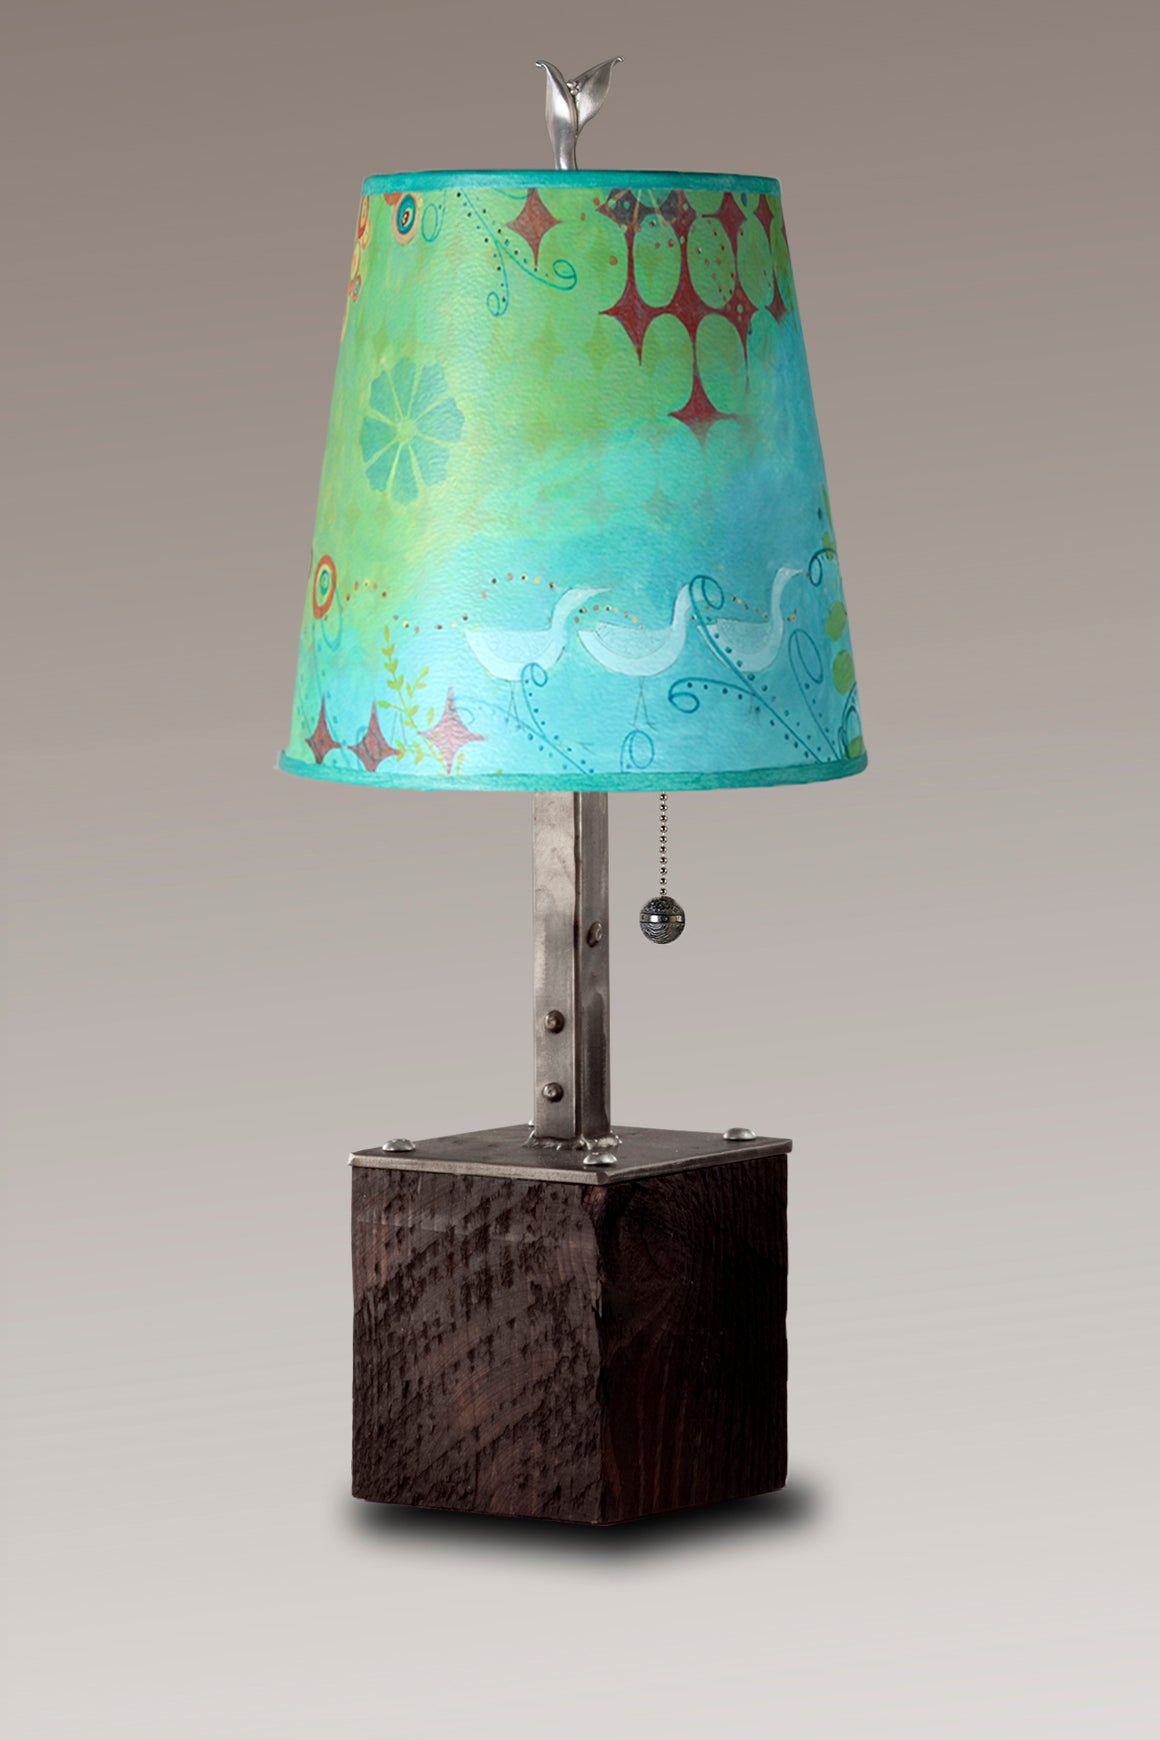 Steel Table Lamp on Reclaimed Wood with Small Drum Shade in Dream Bird